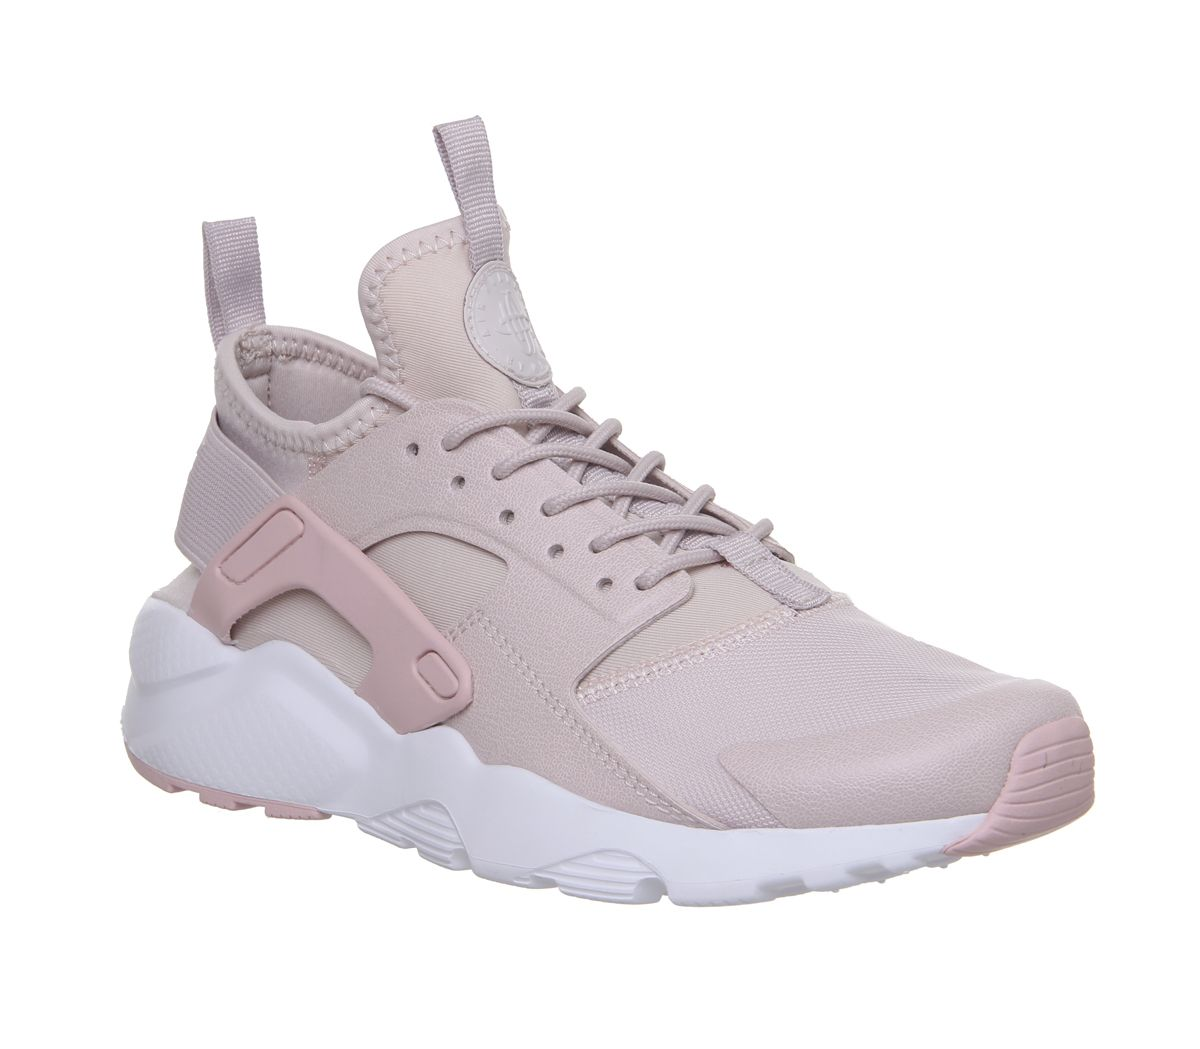 da097a2cee57 Nike Huarache Ultra Gs Trainers Silt Red White - Hers trainers